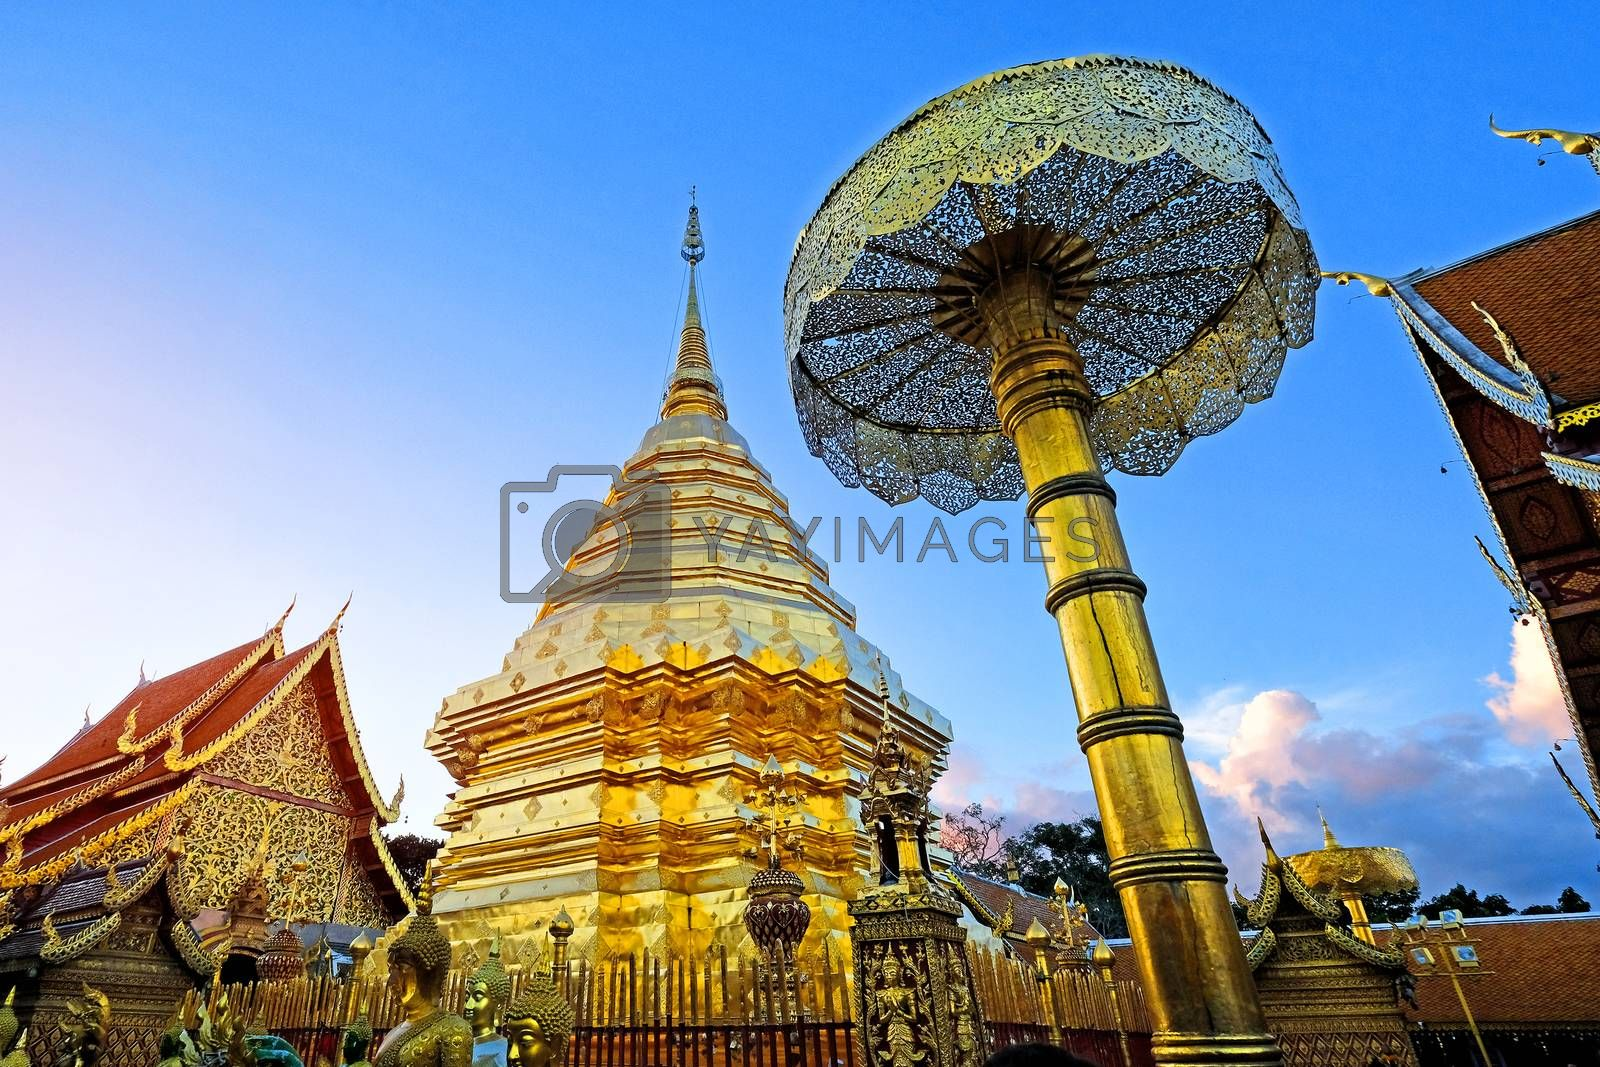 Sunset view of Wat Phra That Doi Suthep, Chiang Mai, Popular historical temple in Thailand.